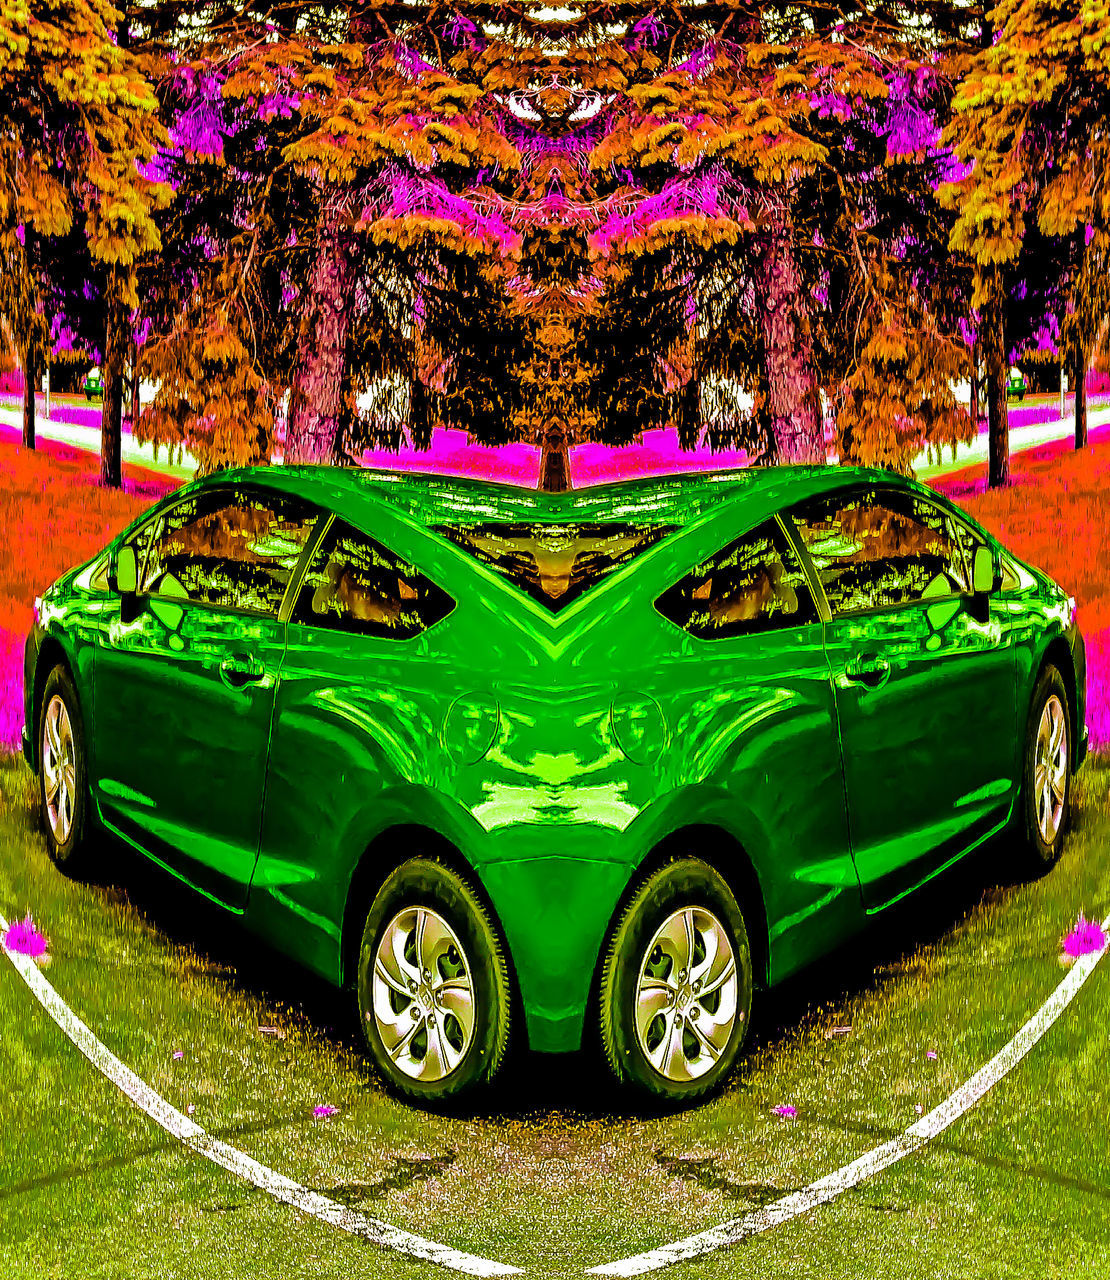 car, transportation, land vehicle, green color, celebration, outdoors, tree, day, multi colored, no people